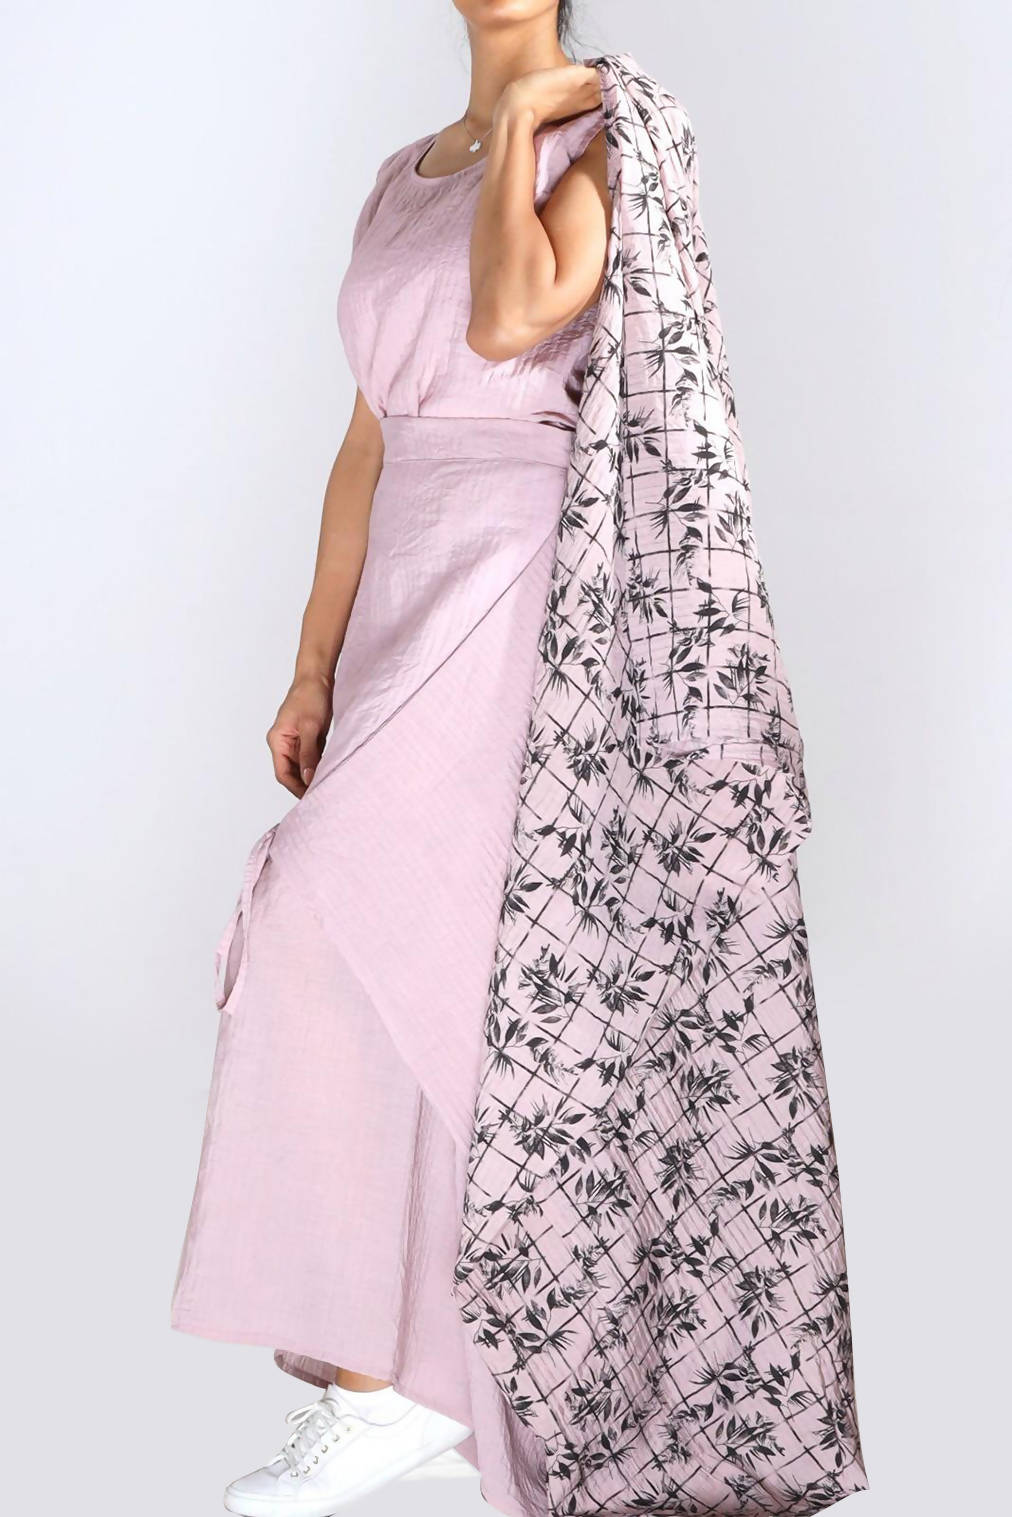 A55 : Bisht with top & skirt